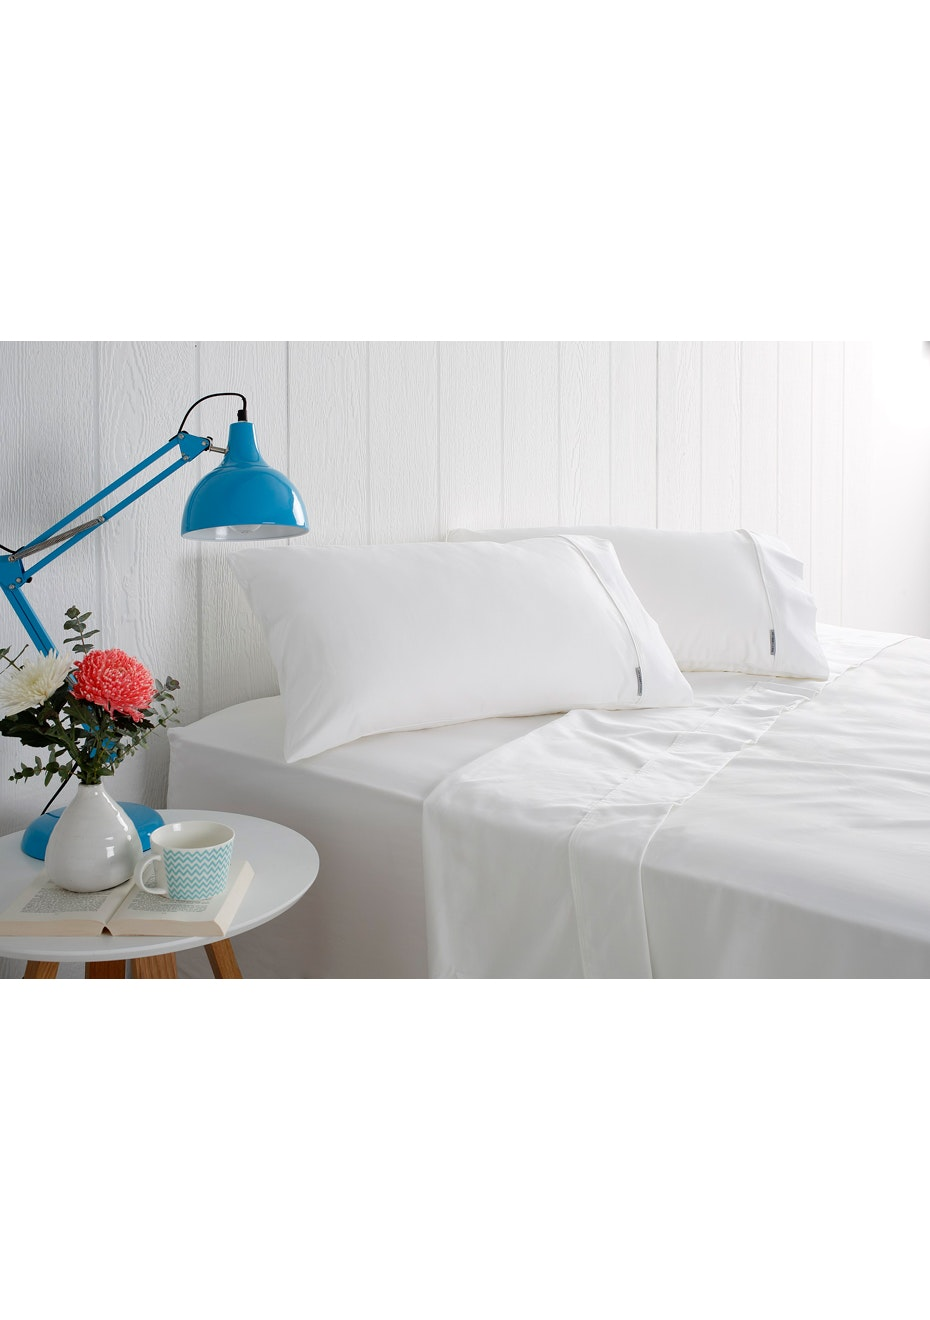 Odyssey Living 1000 Thread Count – Cotton Rich Sheet Sets - White - Double Bed